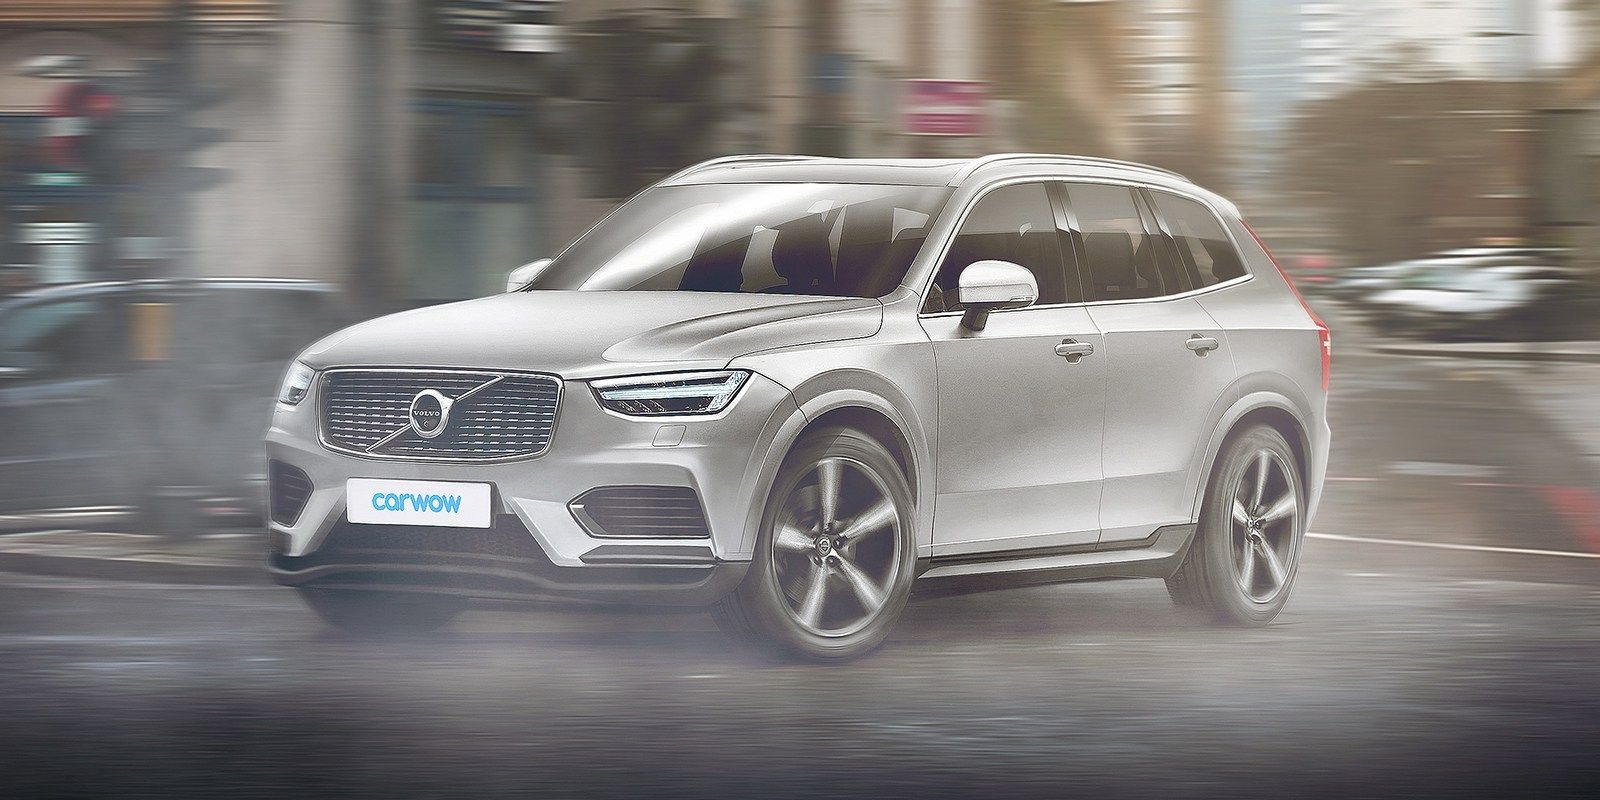 2018 volvo xc60 spy shots. volvo xc60 2018 review, spy shot, release date | 2018/2019 car review xc60 shots